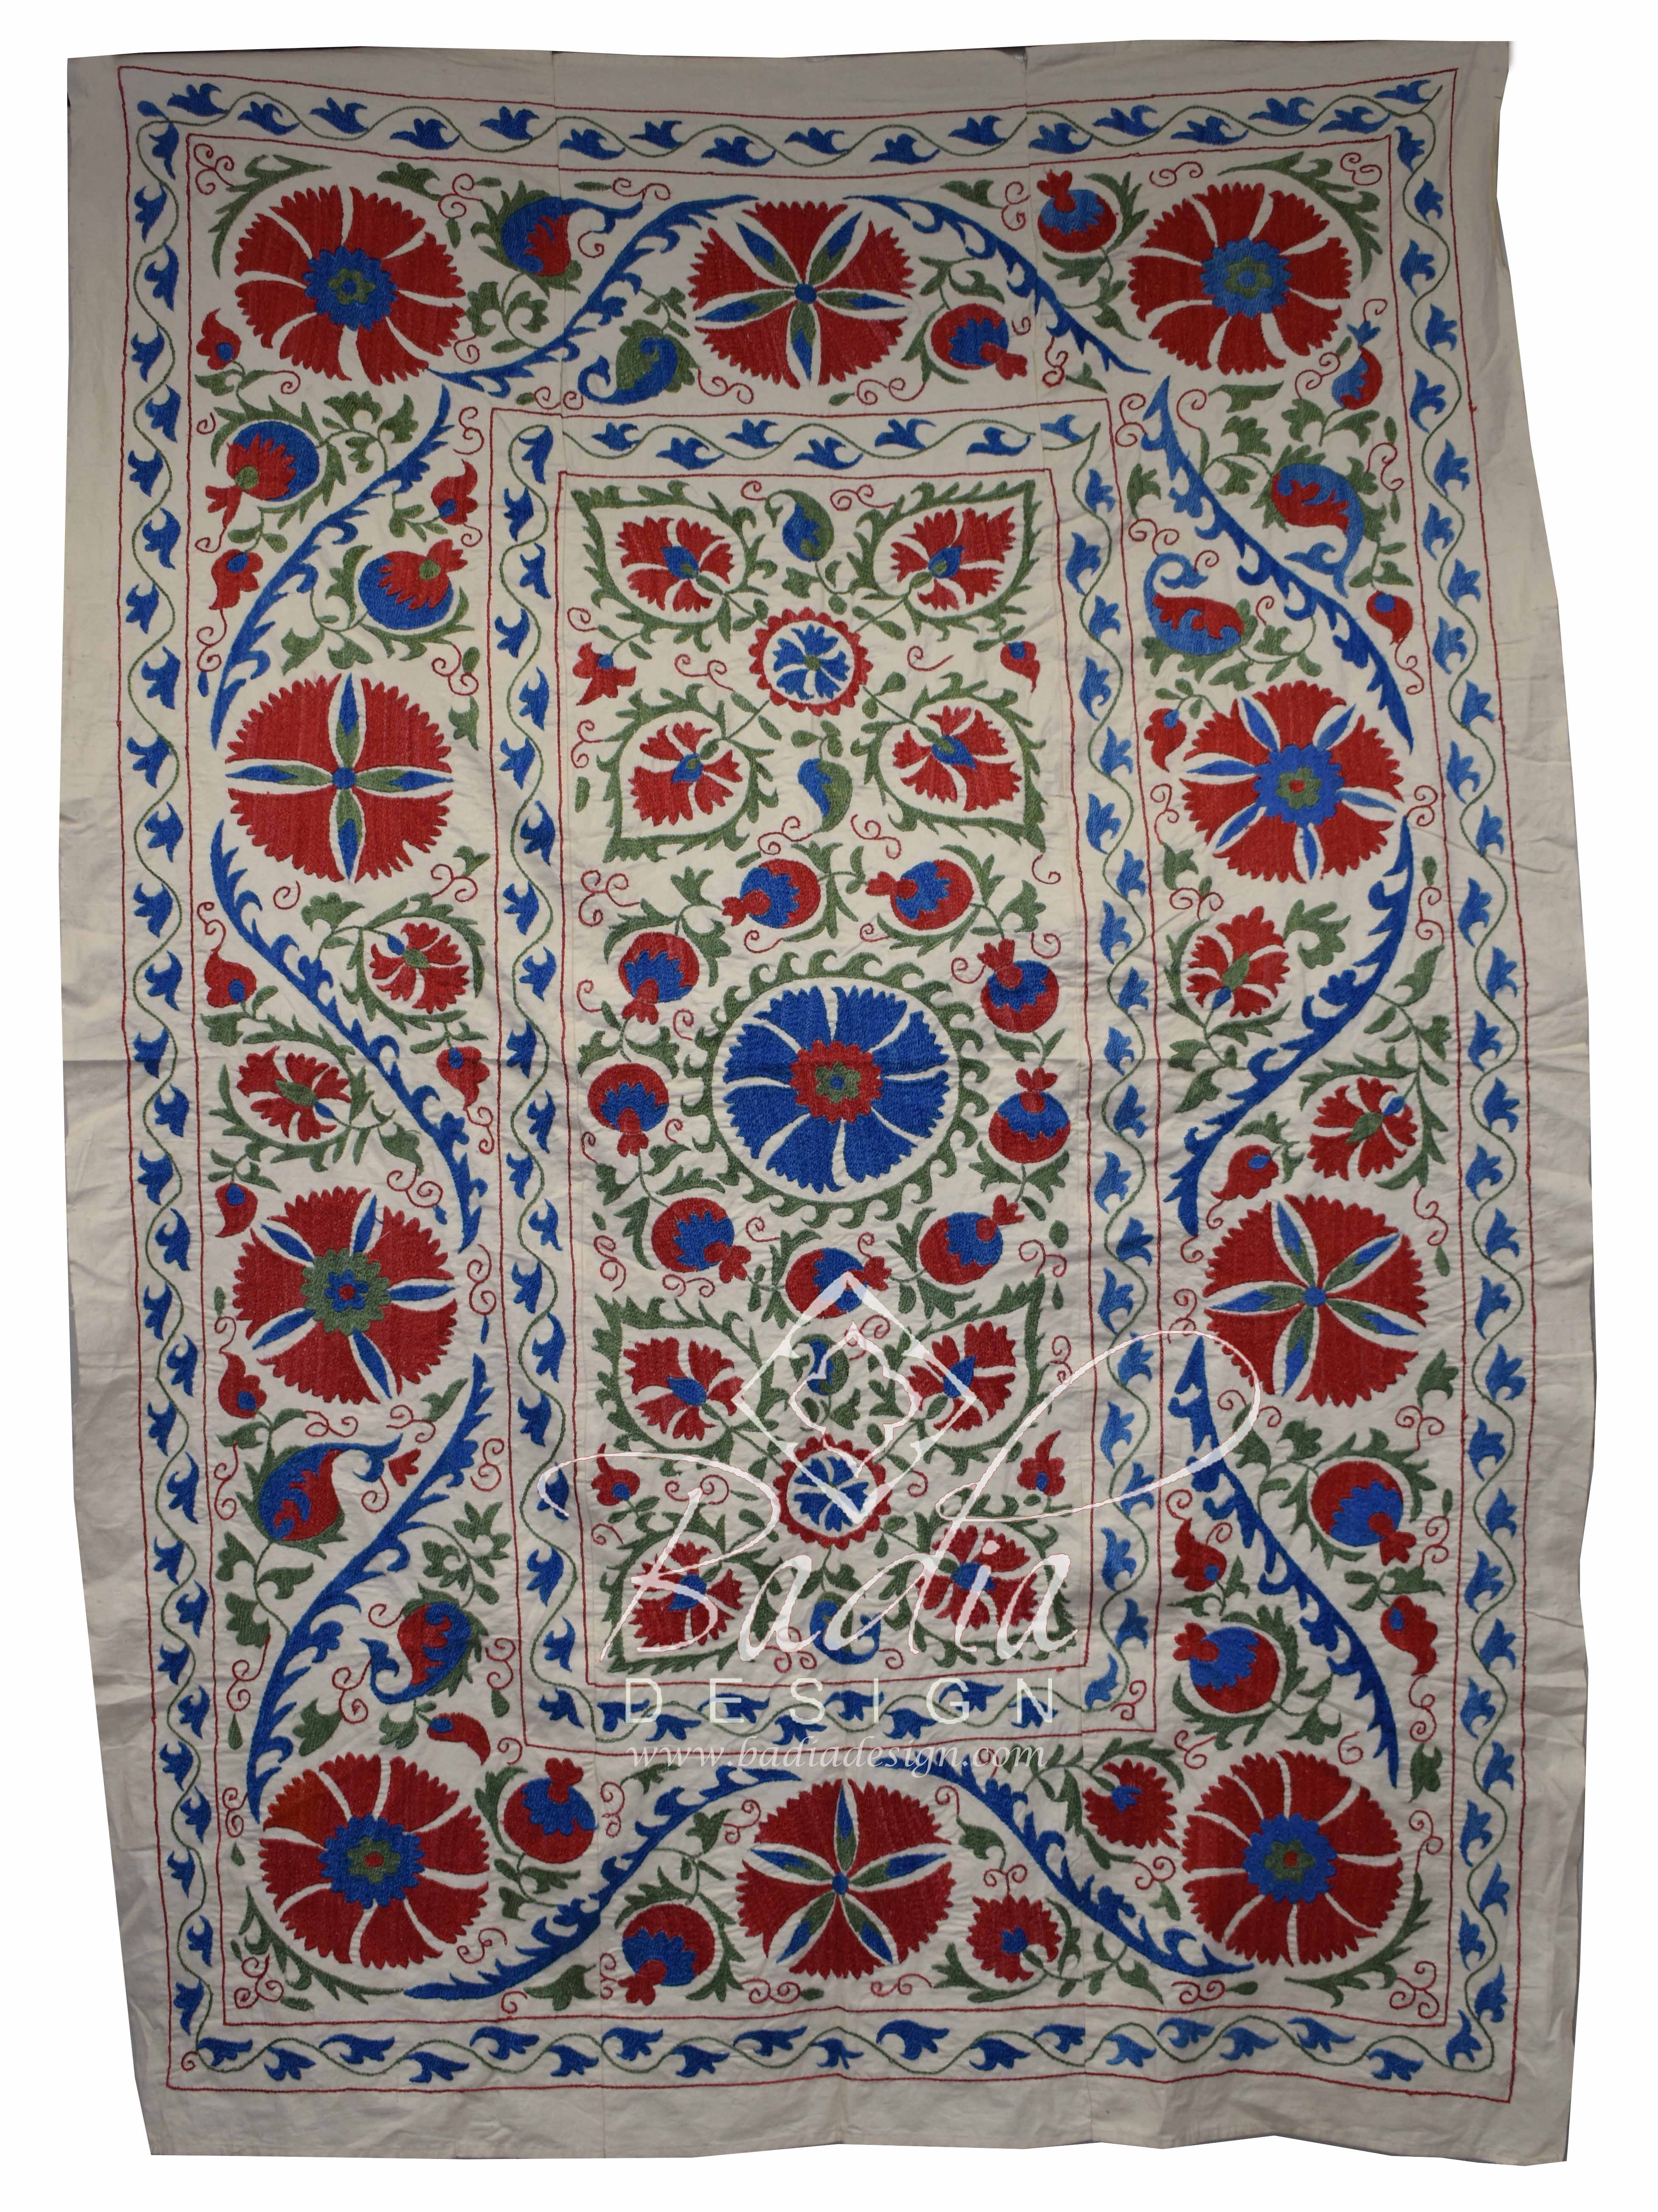 embroidery-textile-suzani-quilt-suzqlt009.jpg